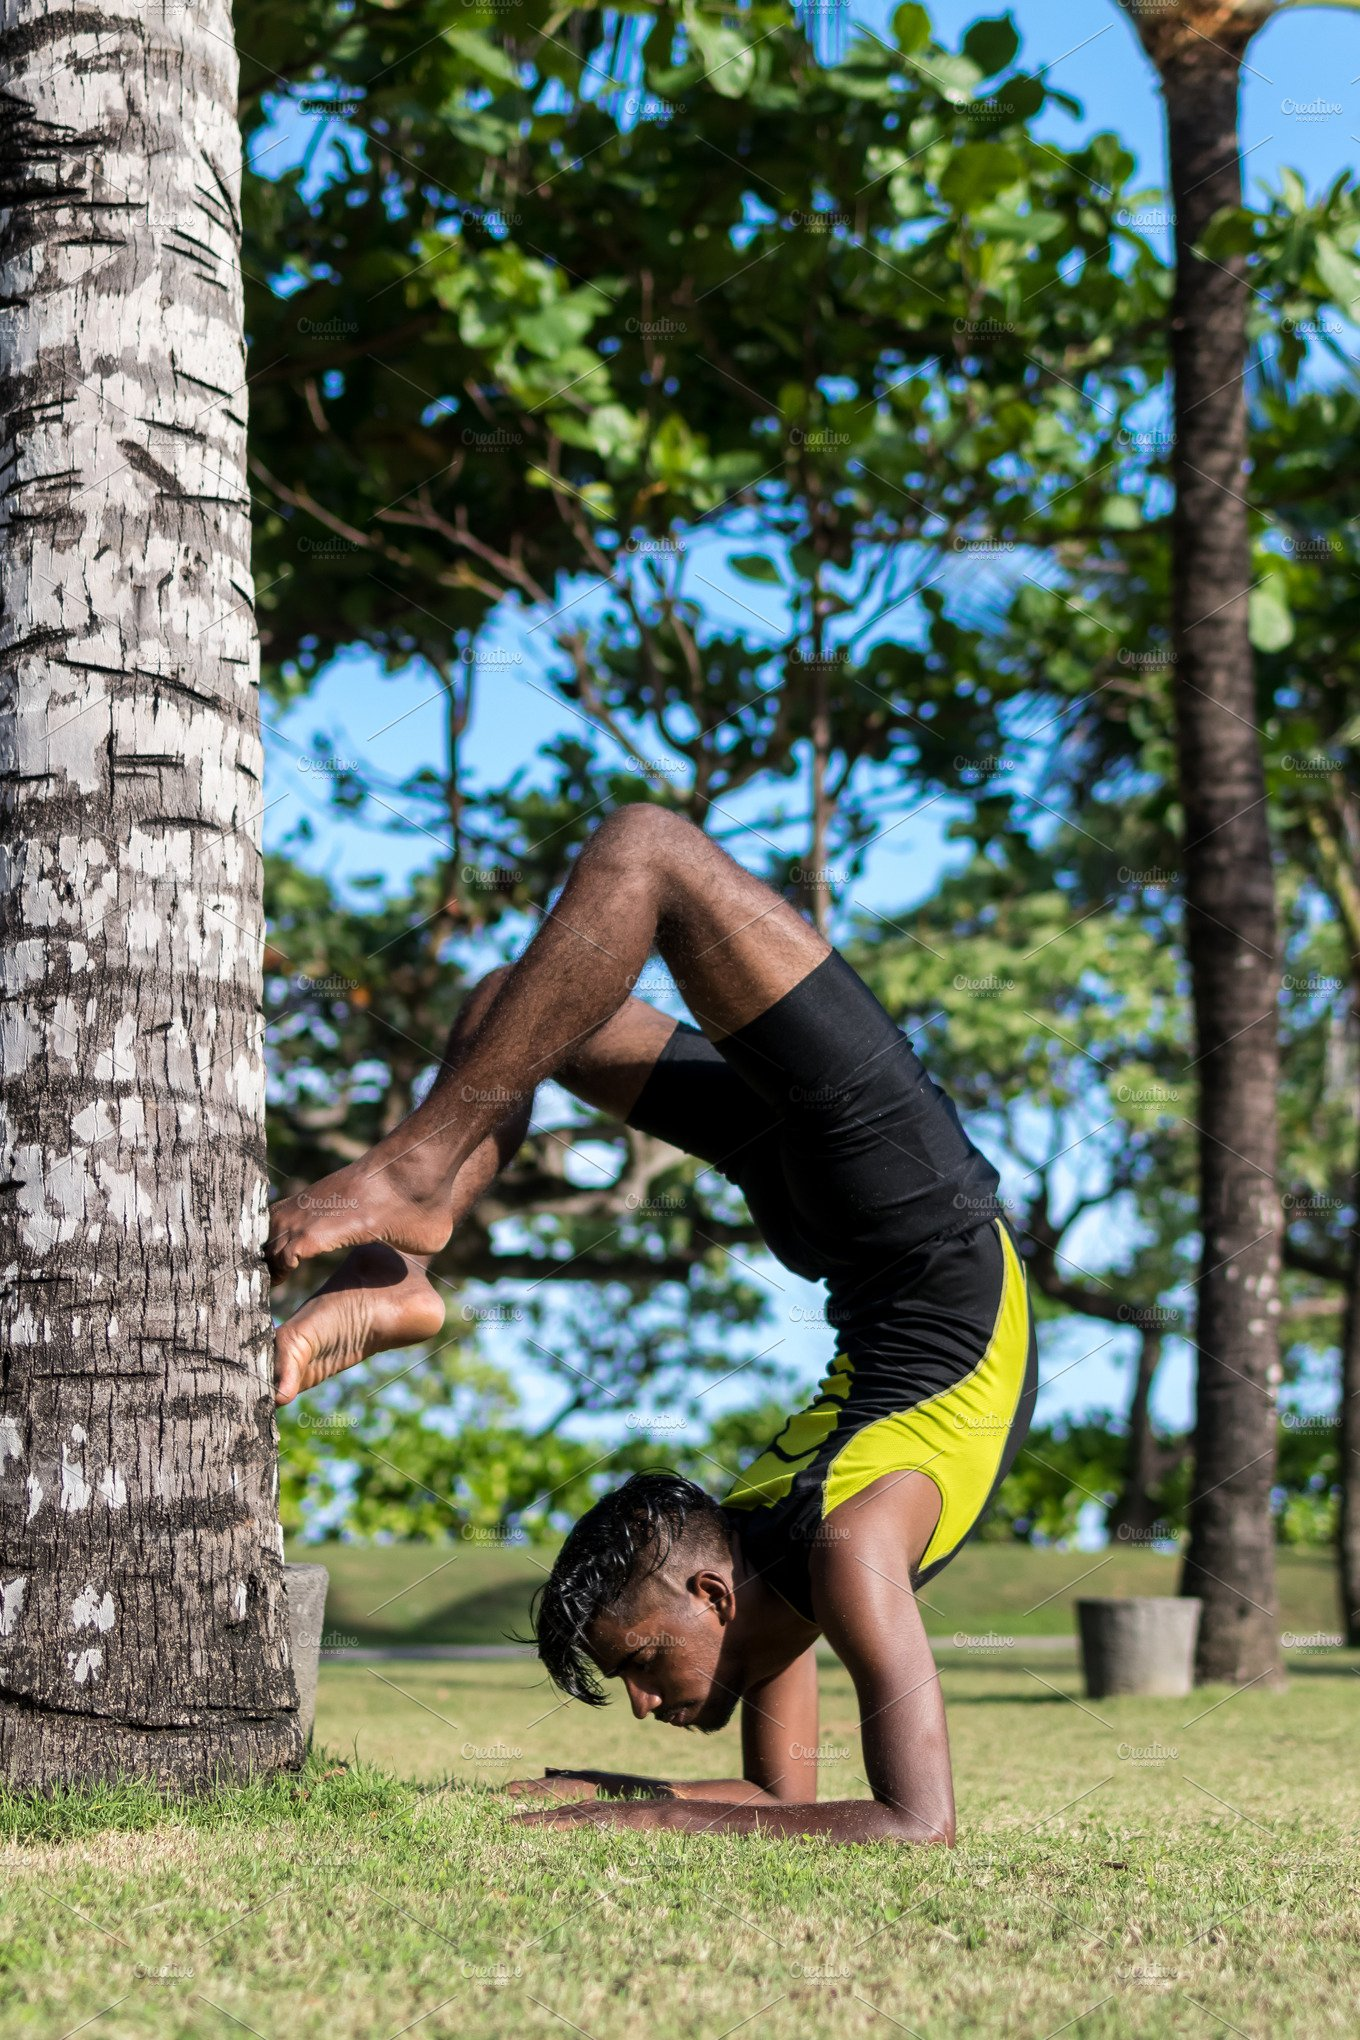 Young Yoga Man Practitioners Doing Yoga On Nature Asian Indian Yogis Man On The Grass In The Park Bali Island High Quality Sports Stock Photos Creative Market